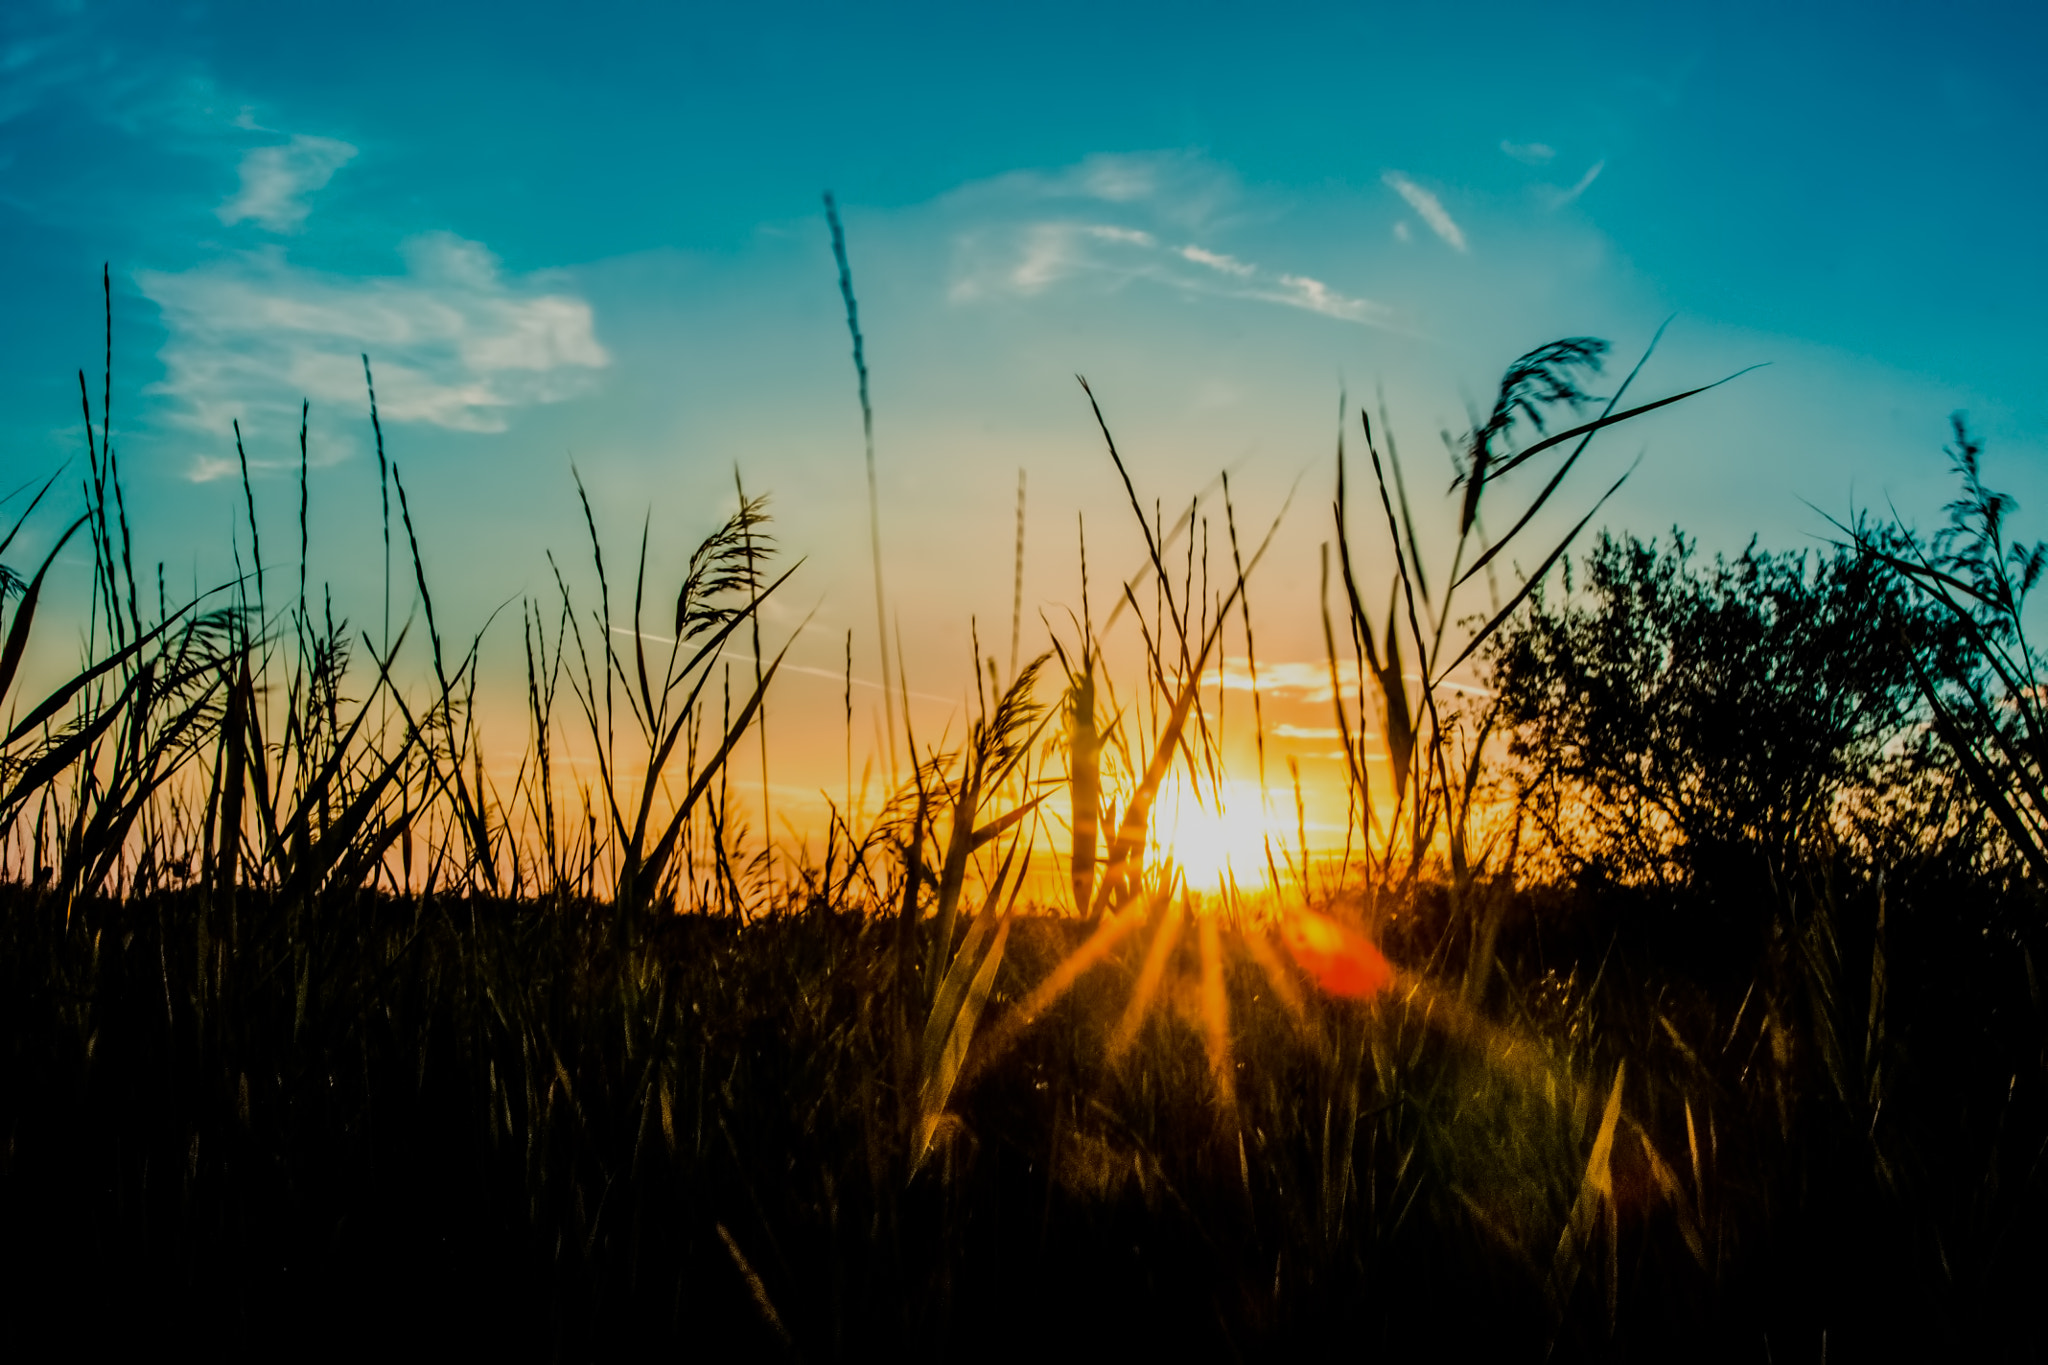 Photograph Sunset from grass by Petre Cojocea on 500px